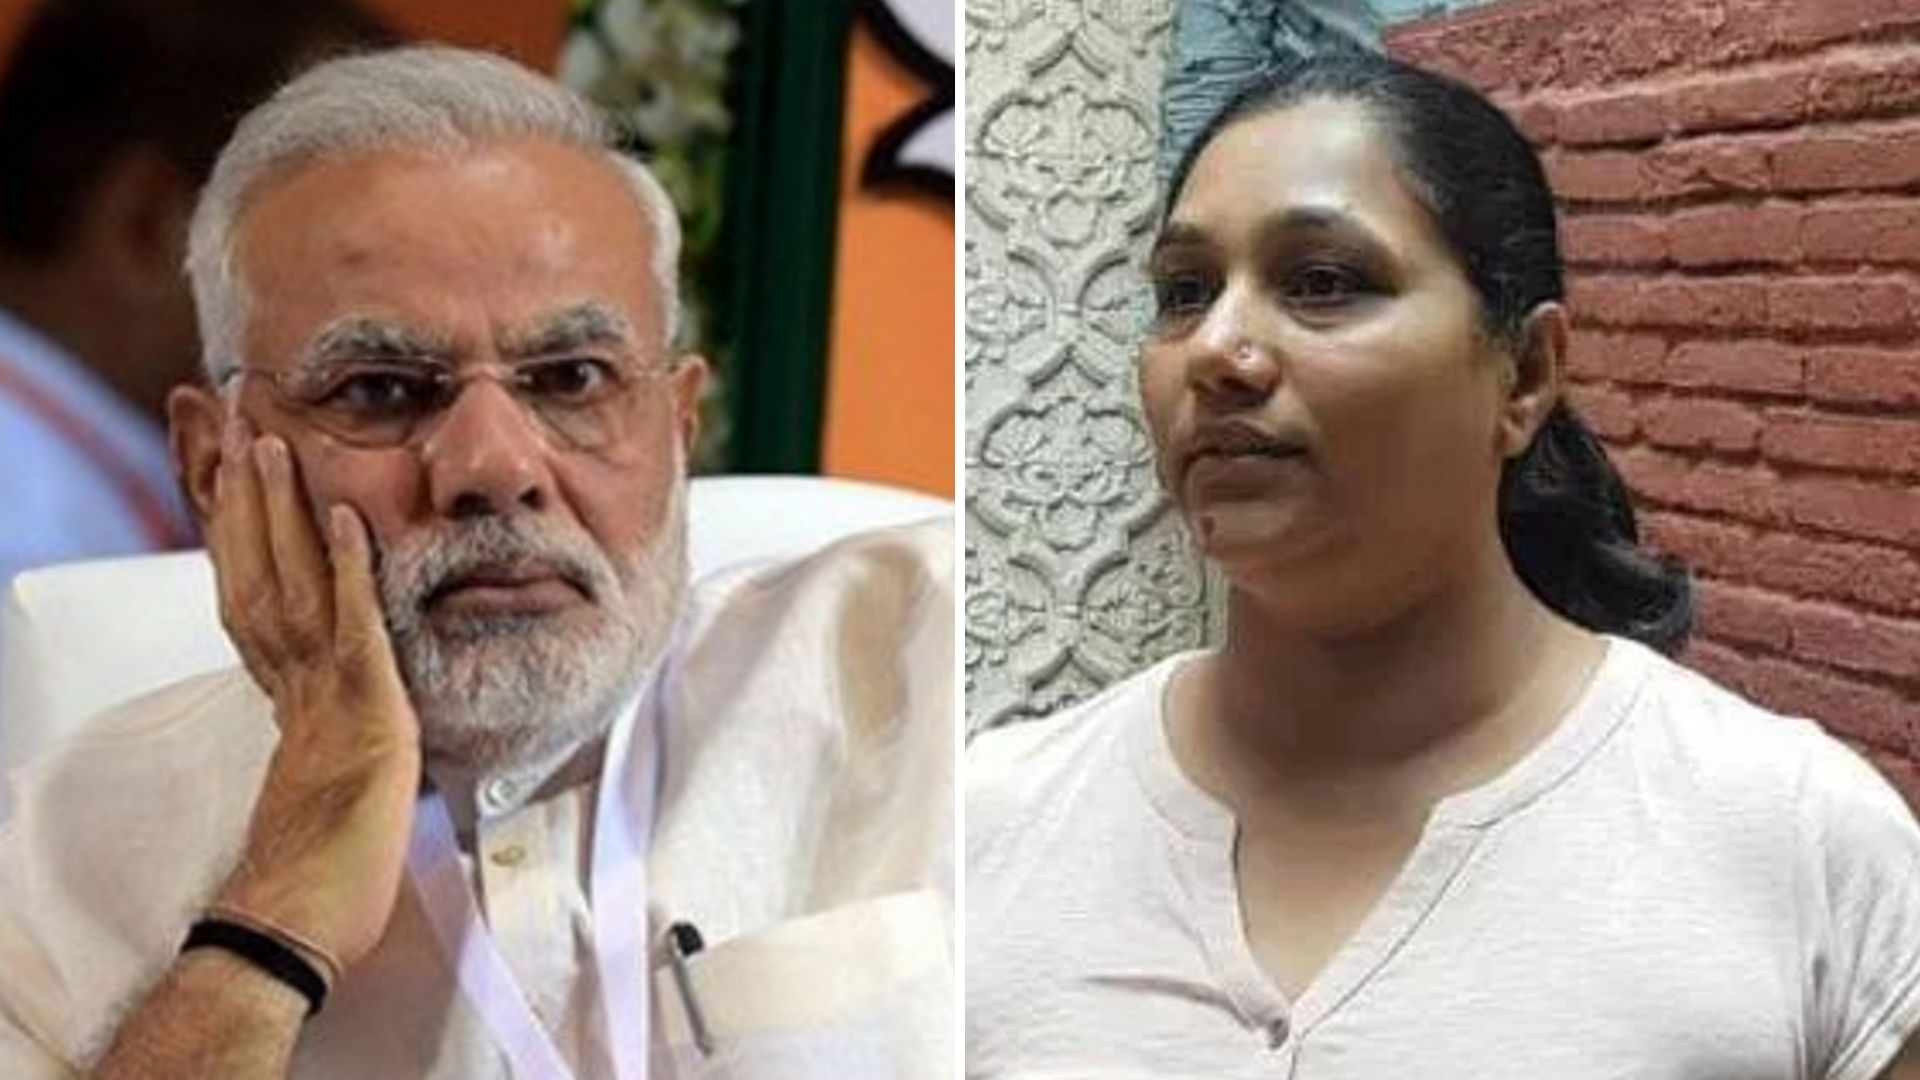 Both Accused Held for Snatching Purse of PM Modi's Niece in Delhi